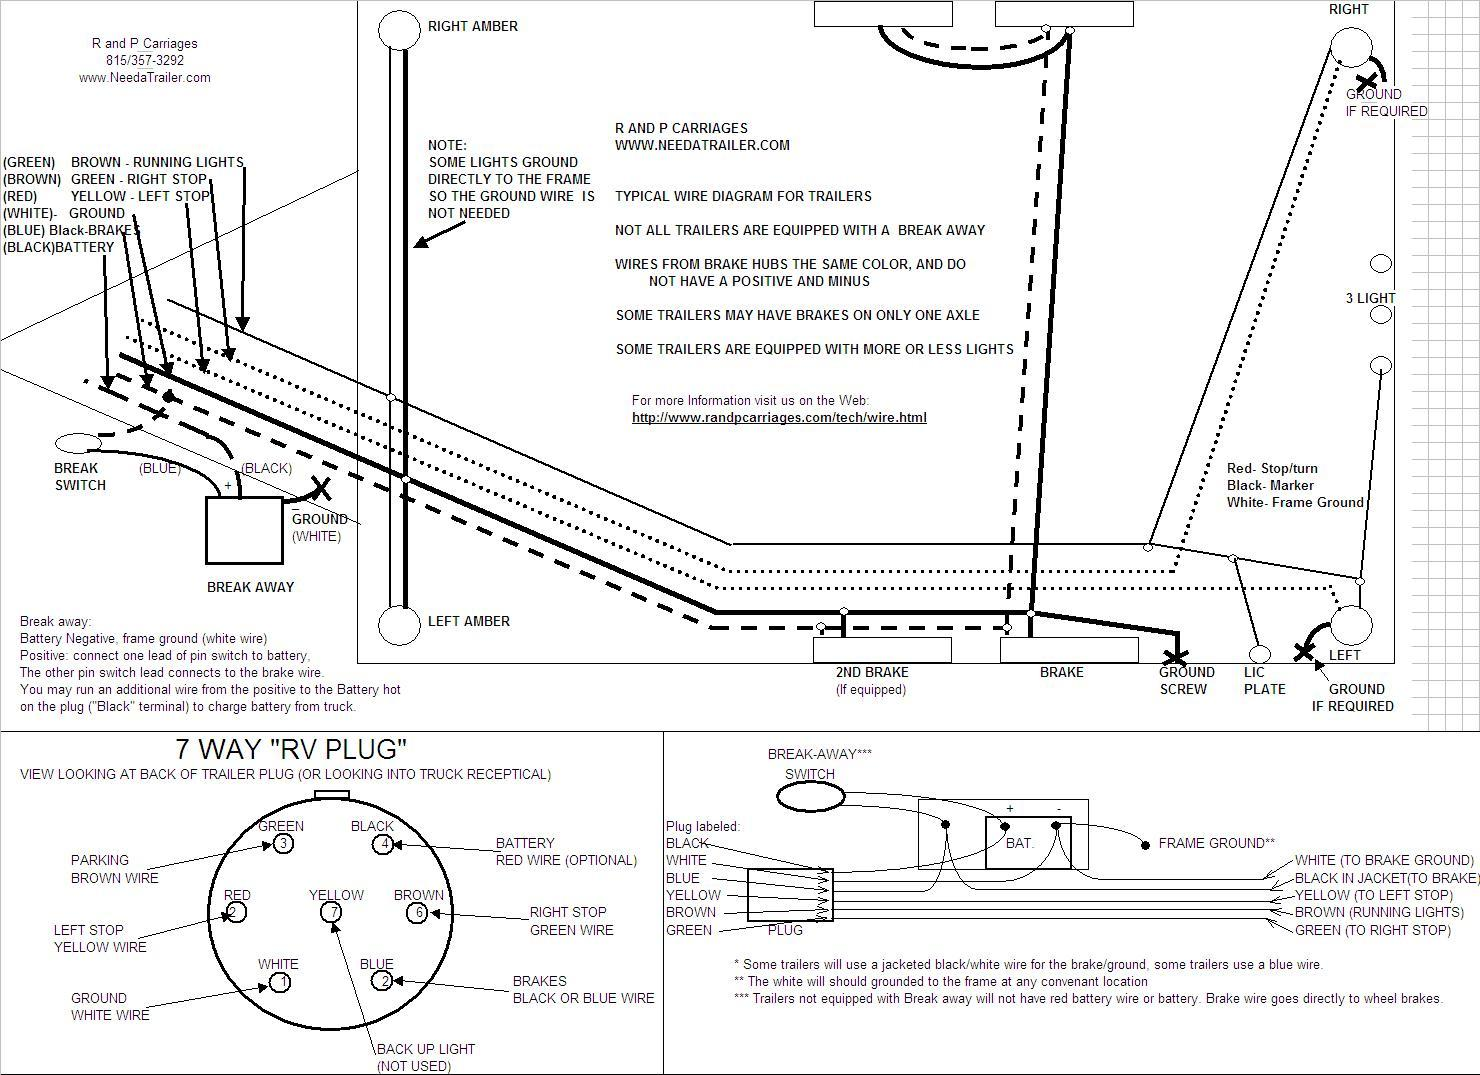 Brake controller installation instructions 7 way wiring diagram asfbconference2016 Image collections